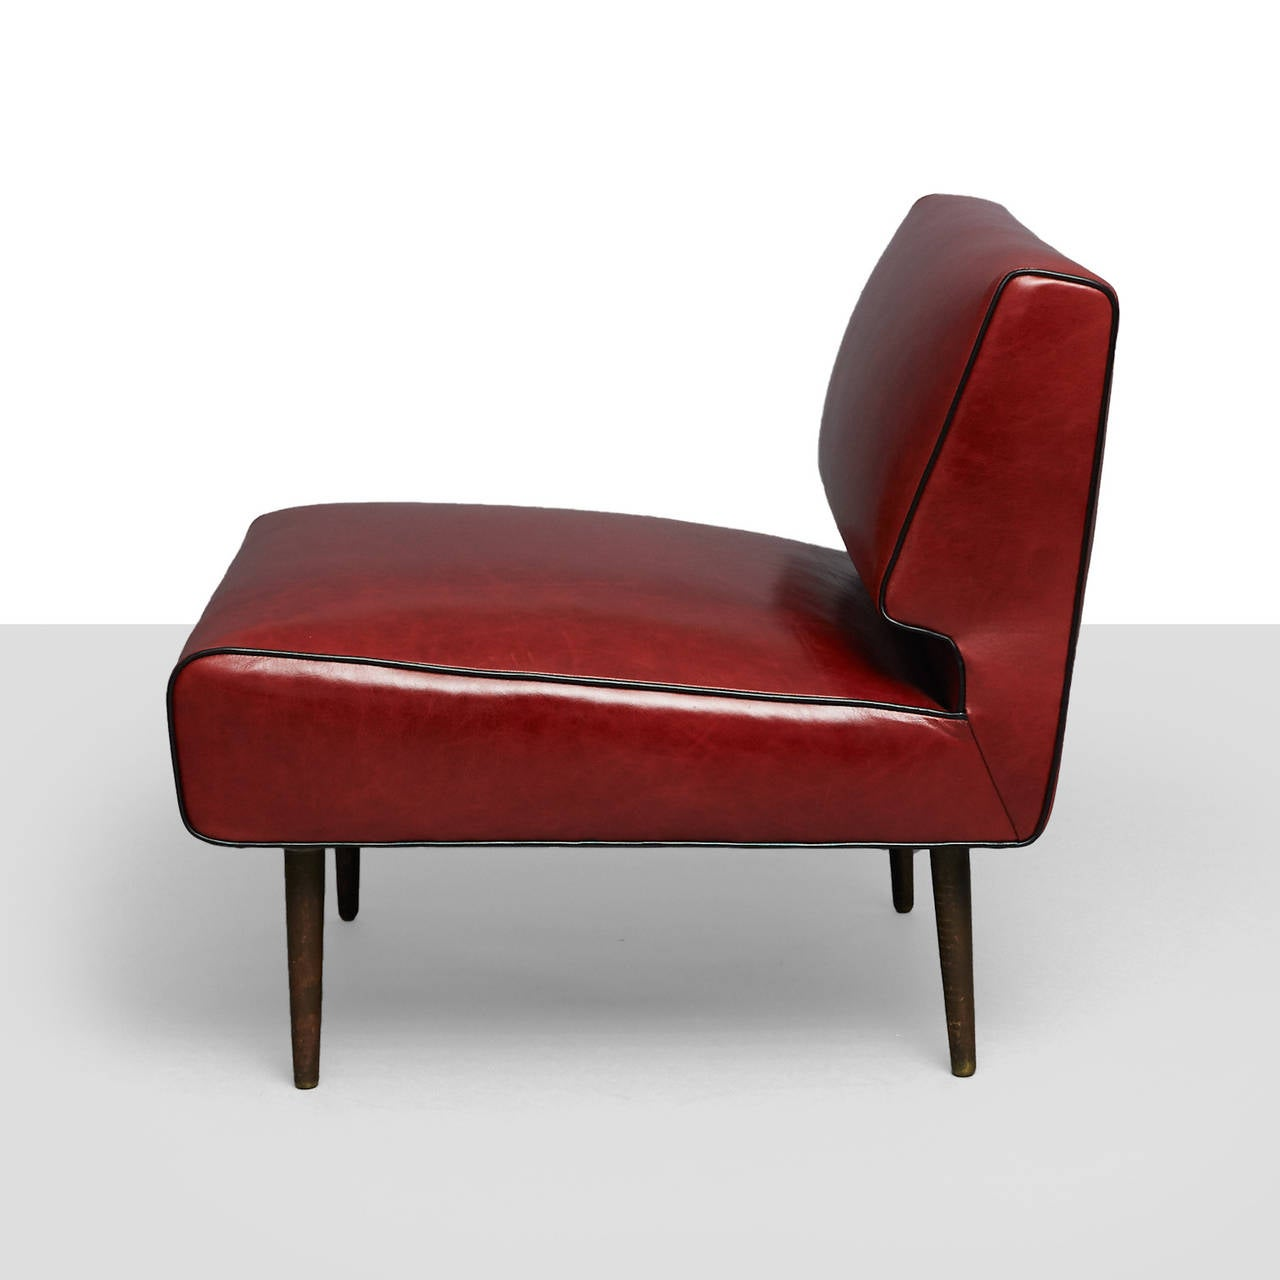 American Edward Wormley Channel Back Chairs, Model No. 4827 For Sale